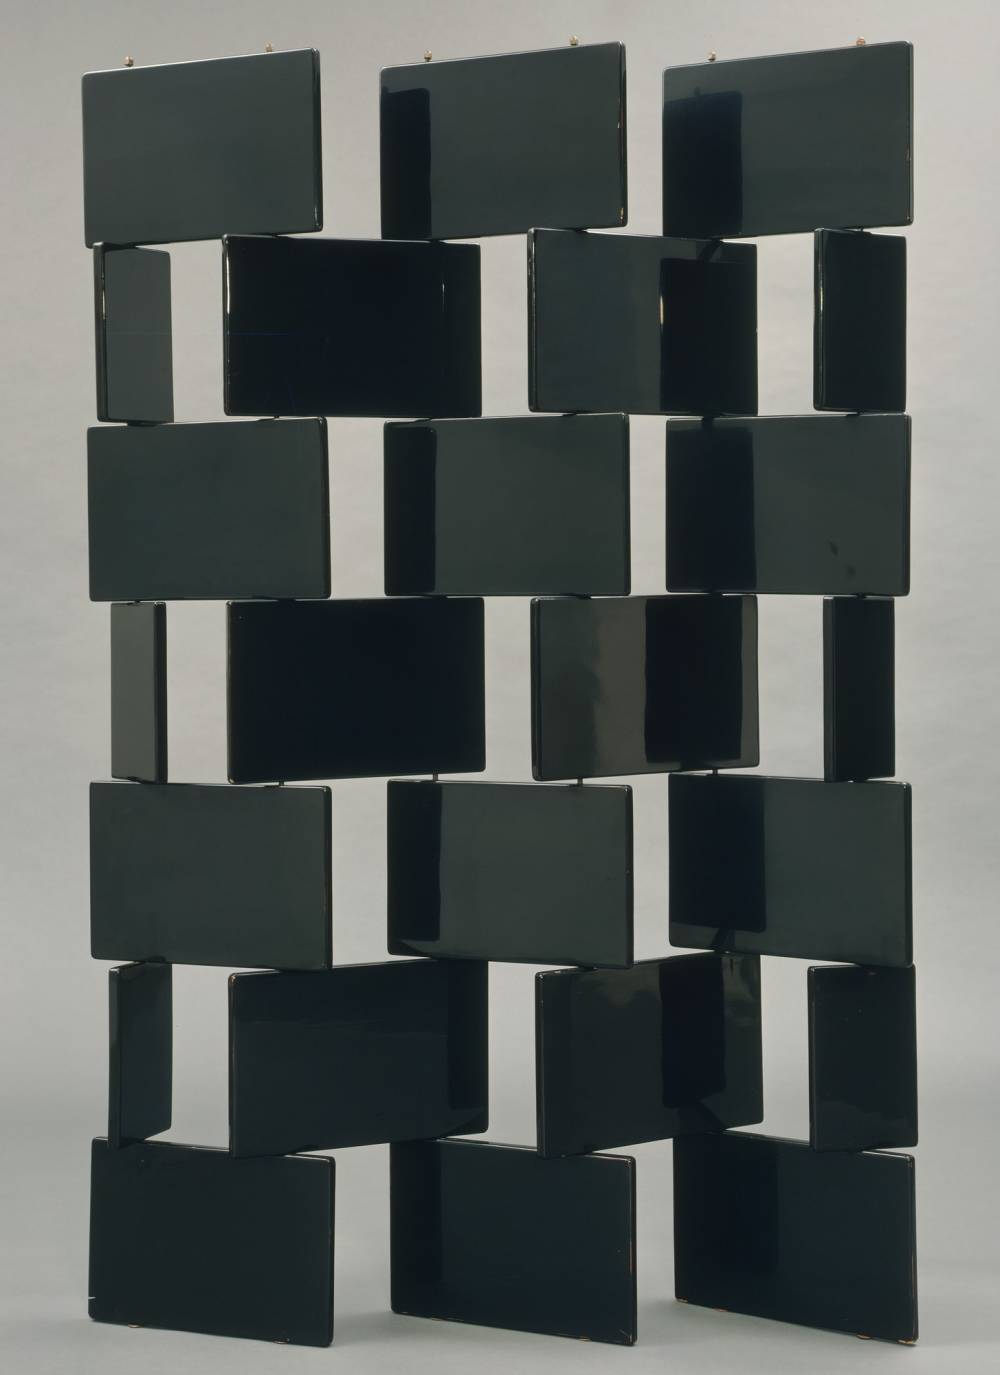 Eileen gray. screen. 1922